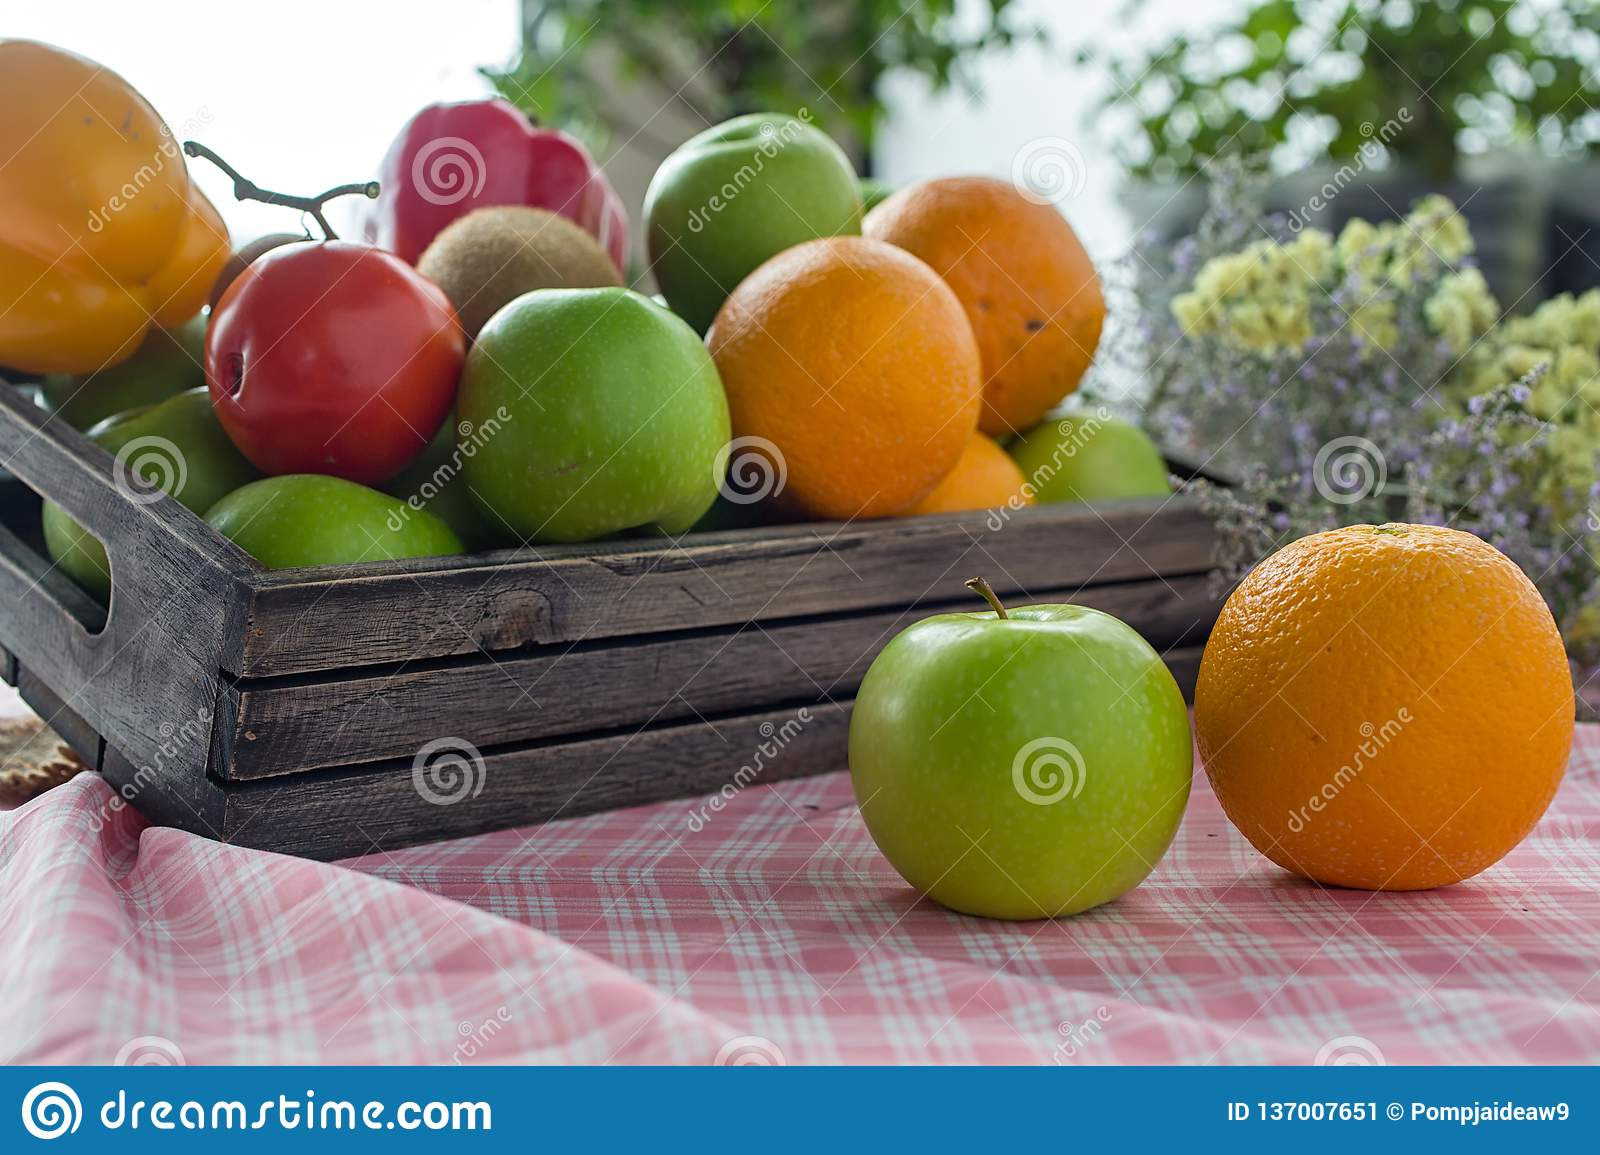 Orange and apple in a wooden crate. Fresh fruit on a wooden table with a cloth. Eating fruit helps to lose weight. fruits and